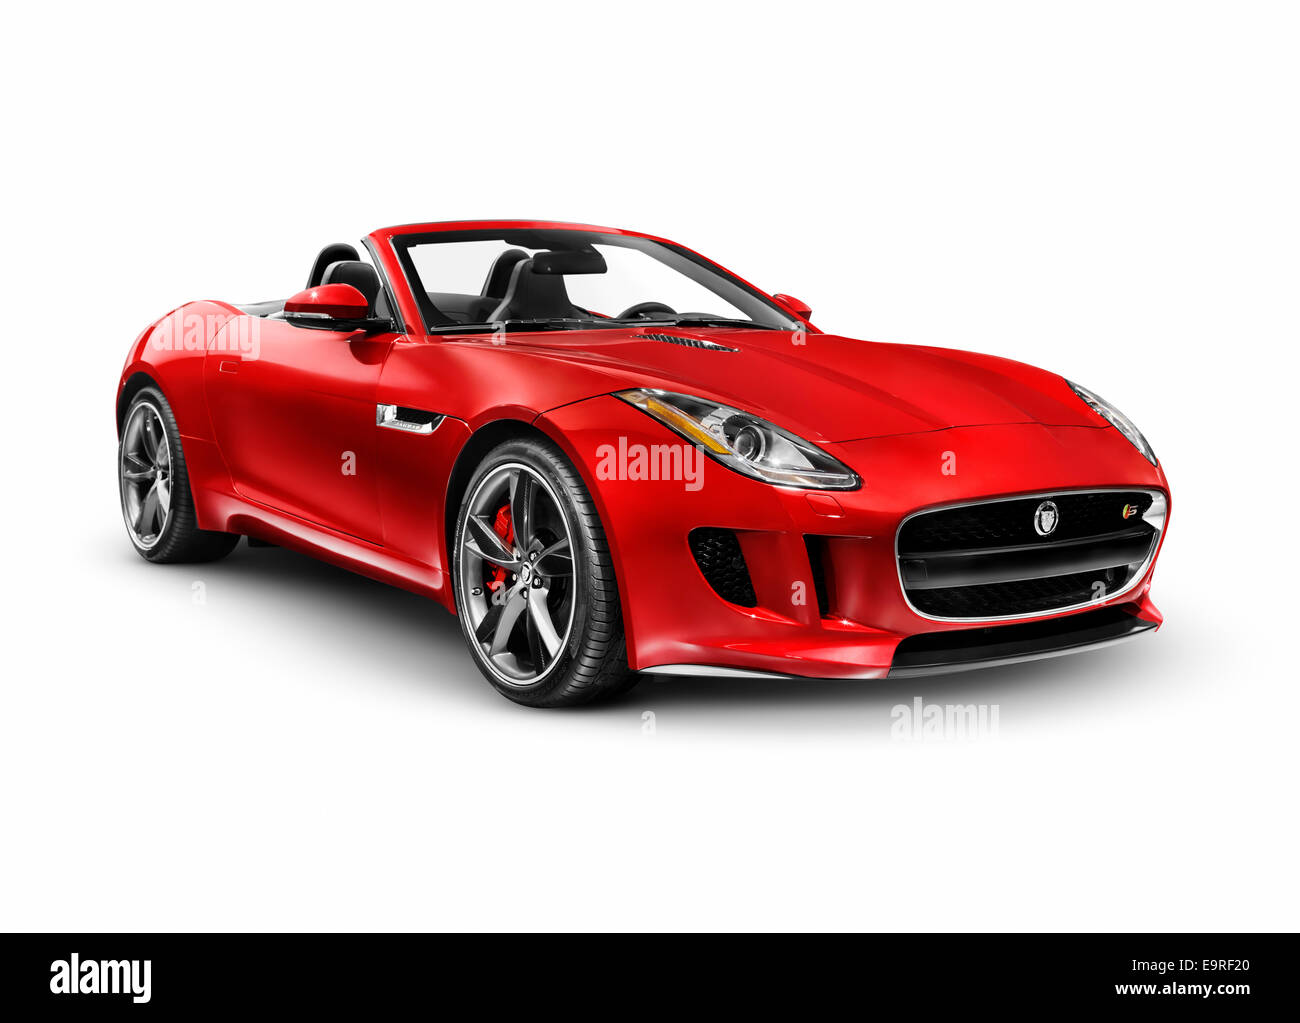 Red 2014 Jaguar F Type S Luxury Sports Car Isolated On White Background  With Clipping Path